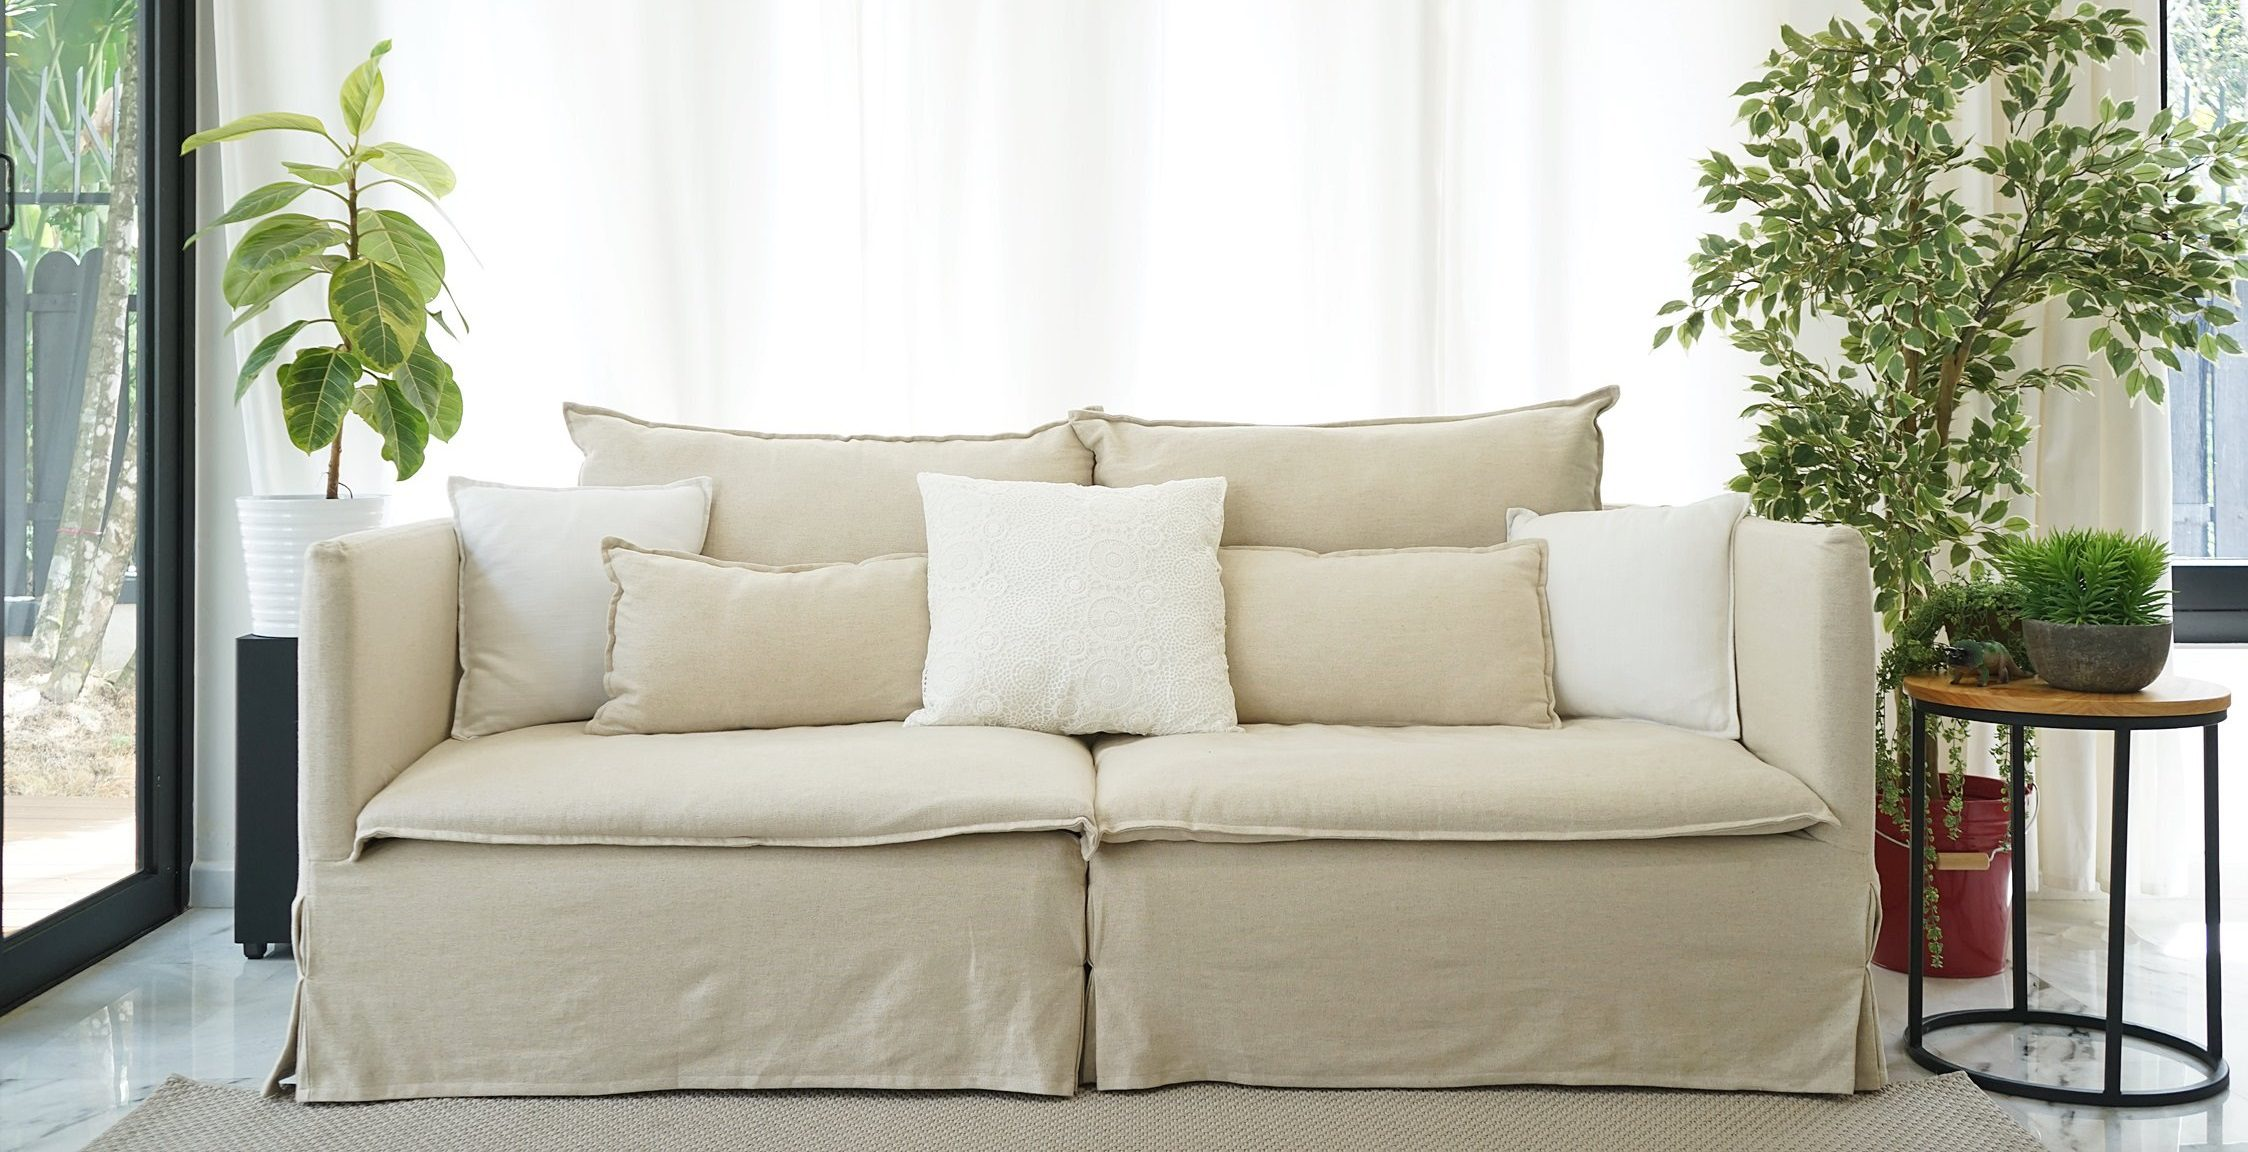 Top 10 Slipcovered Sofa Brands A Practical Review